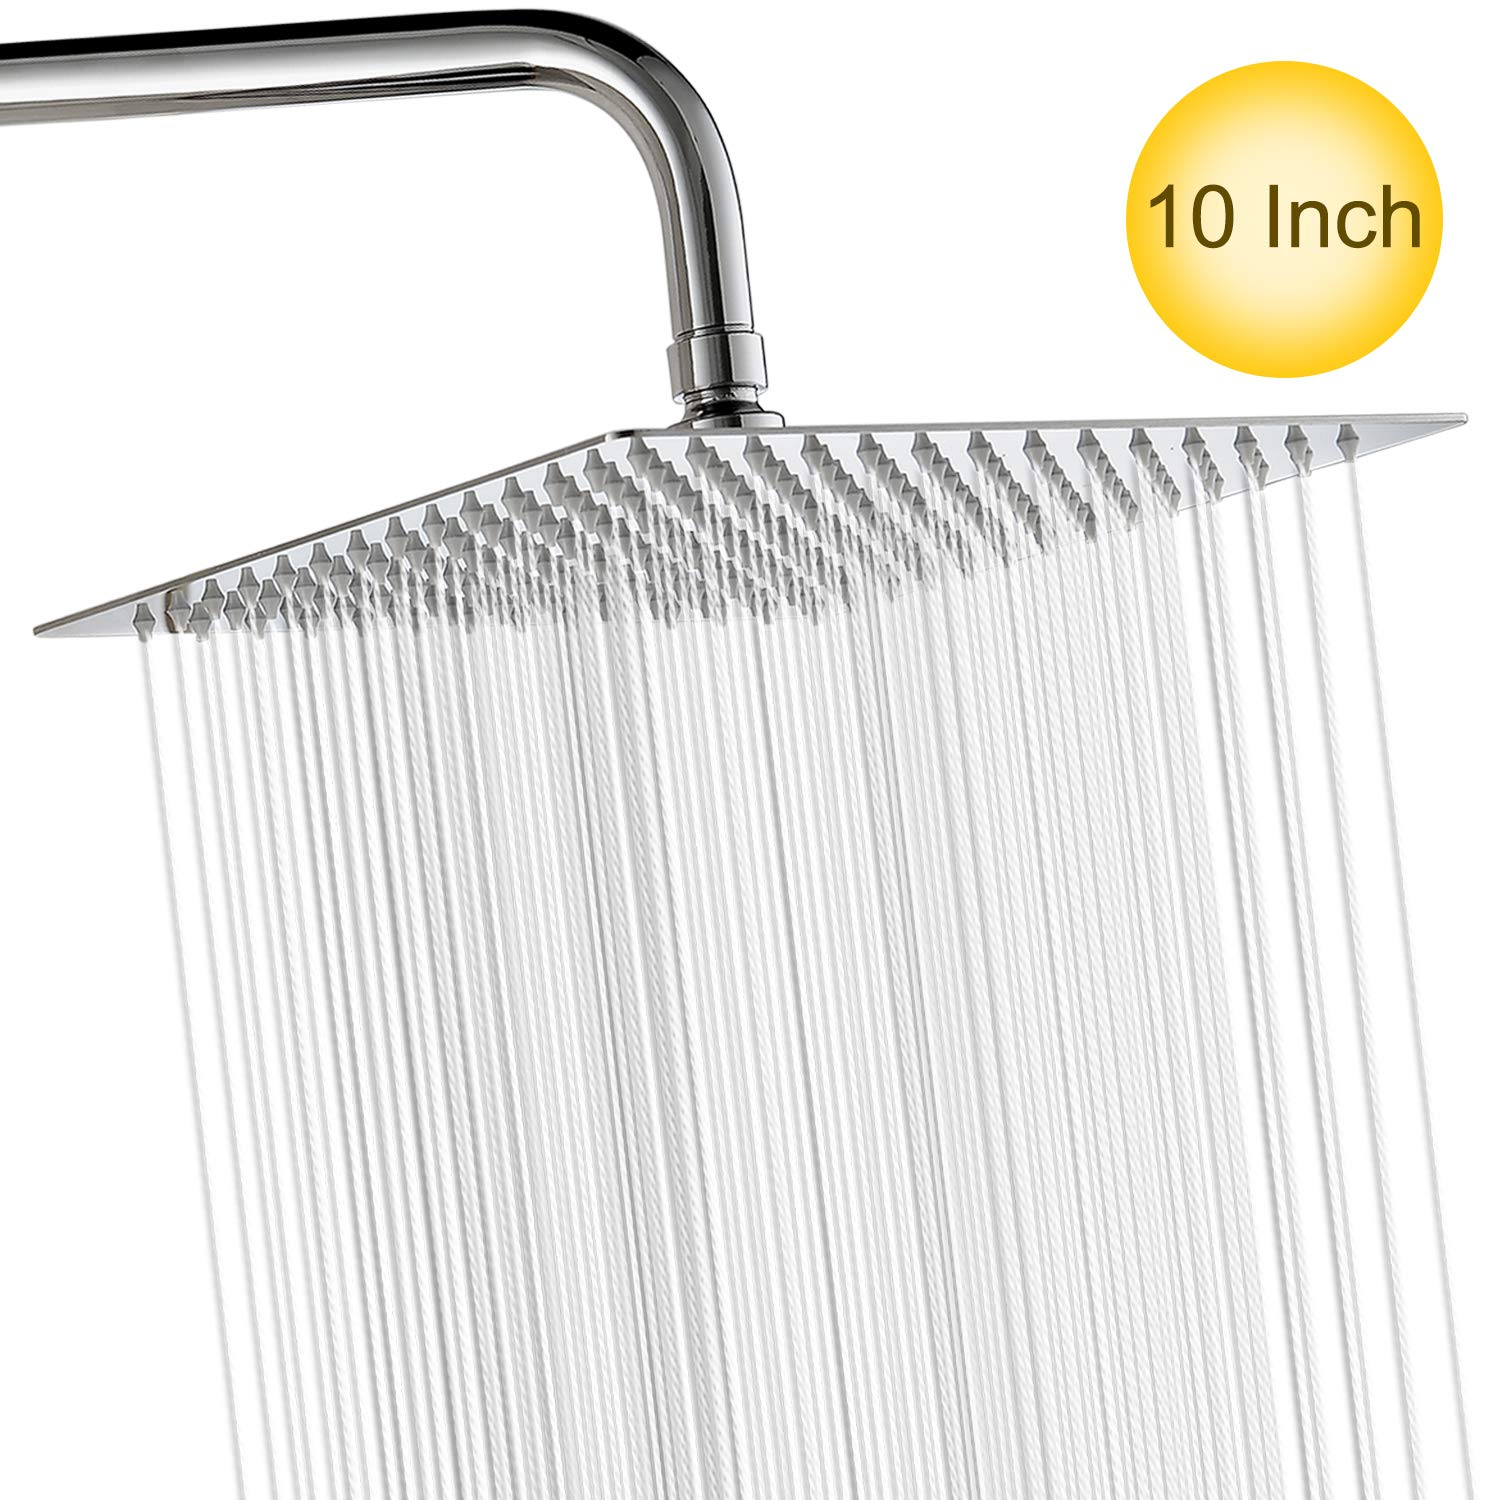 10 Inch High Pressure Shower Head Fixed Mounted Rain Shower head 304 Stainless Steel Ultra Thin Rainfall Shower Head with Mirror Effect Easy to Install Self Cleaning Square